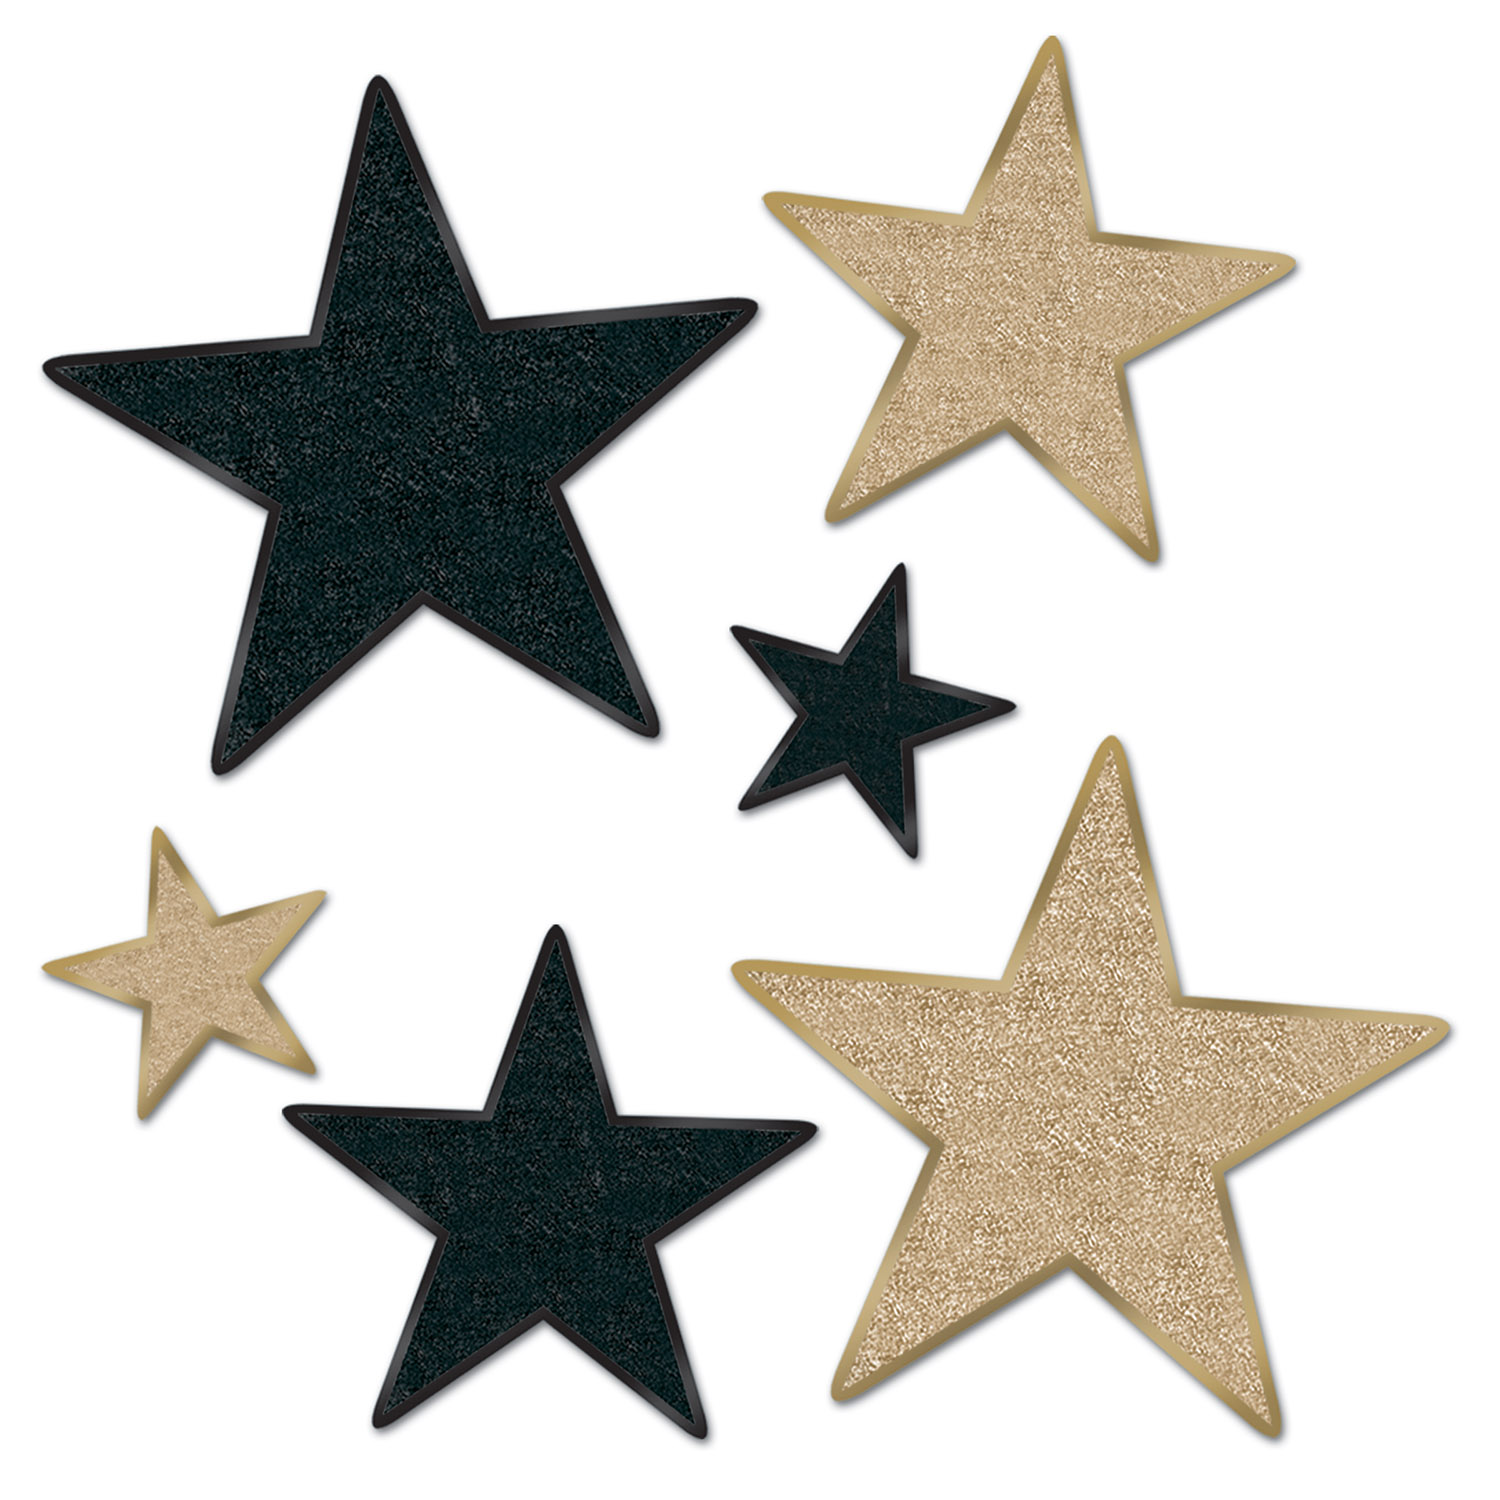 Assorted sized star cutouts with glitter.